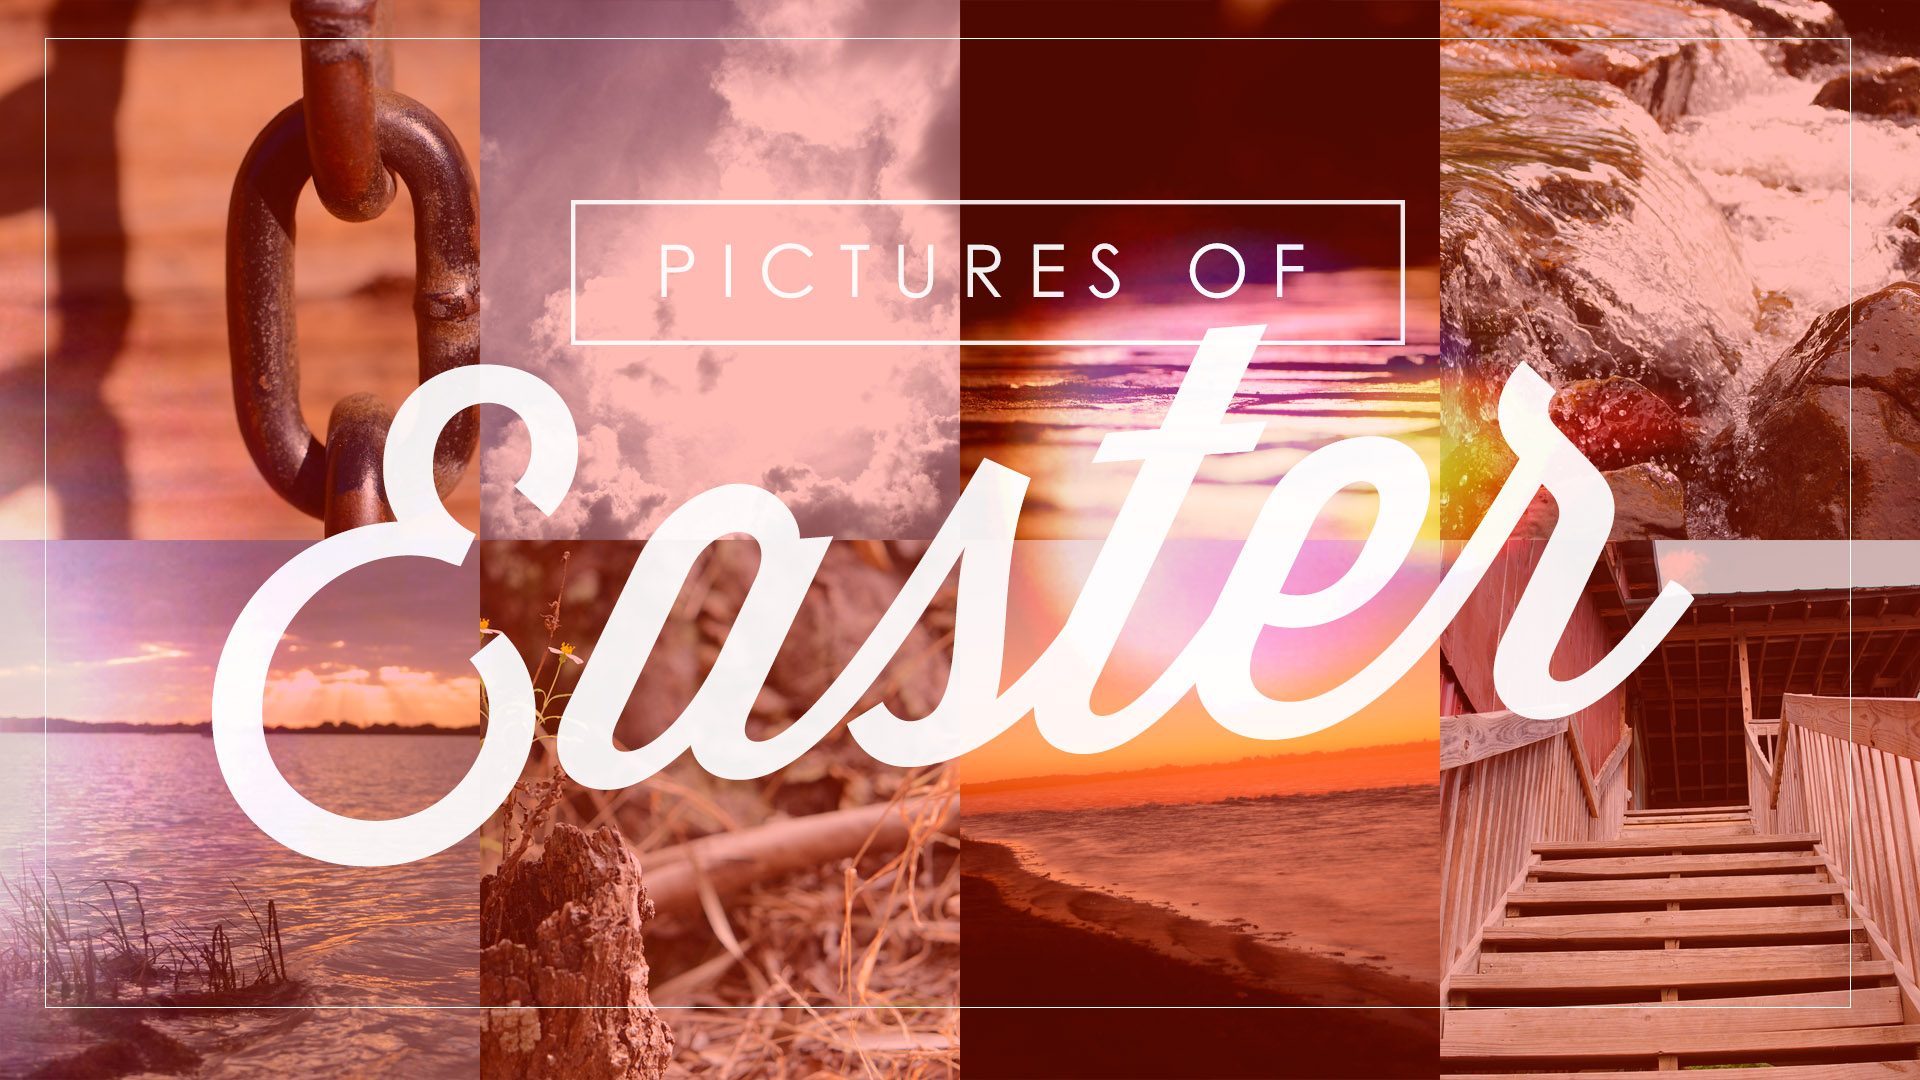 Pictures_of_Easter_title.jpg